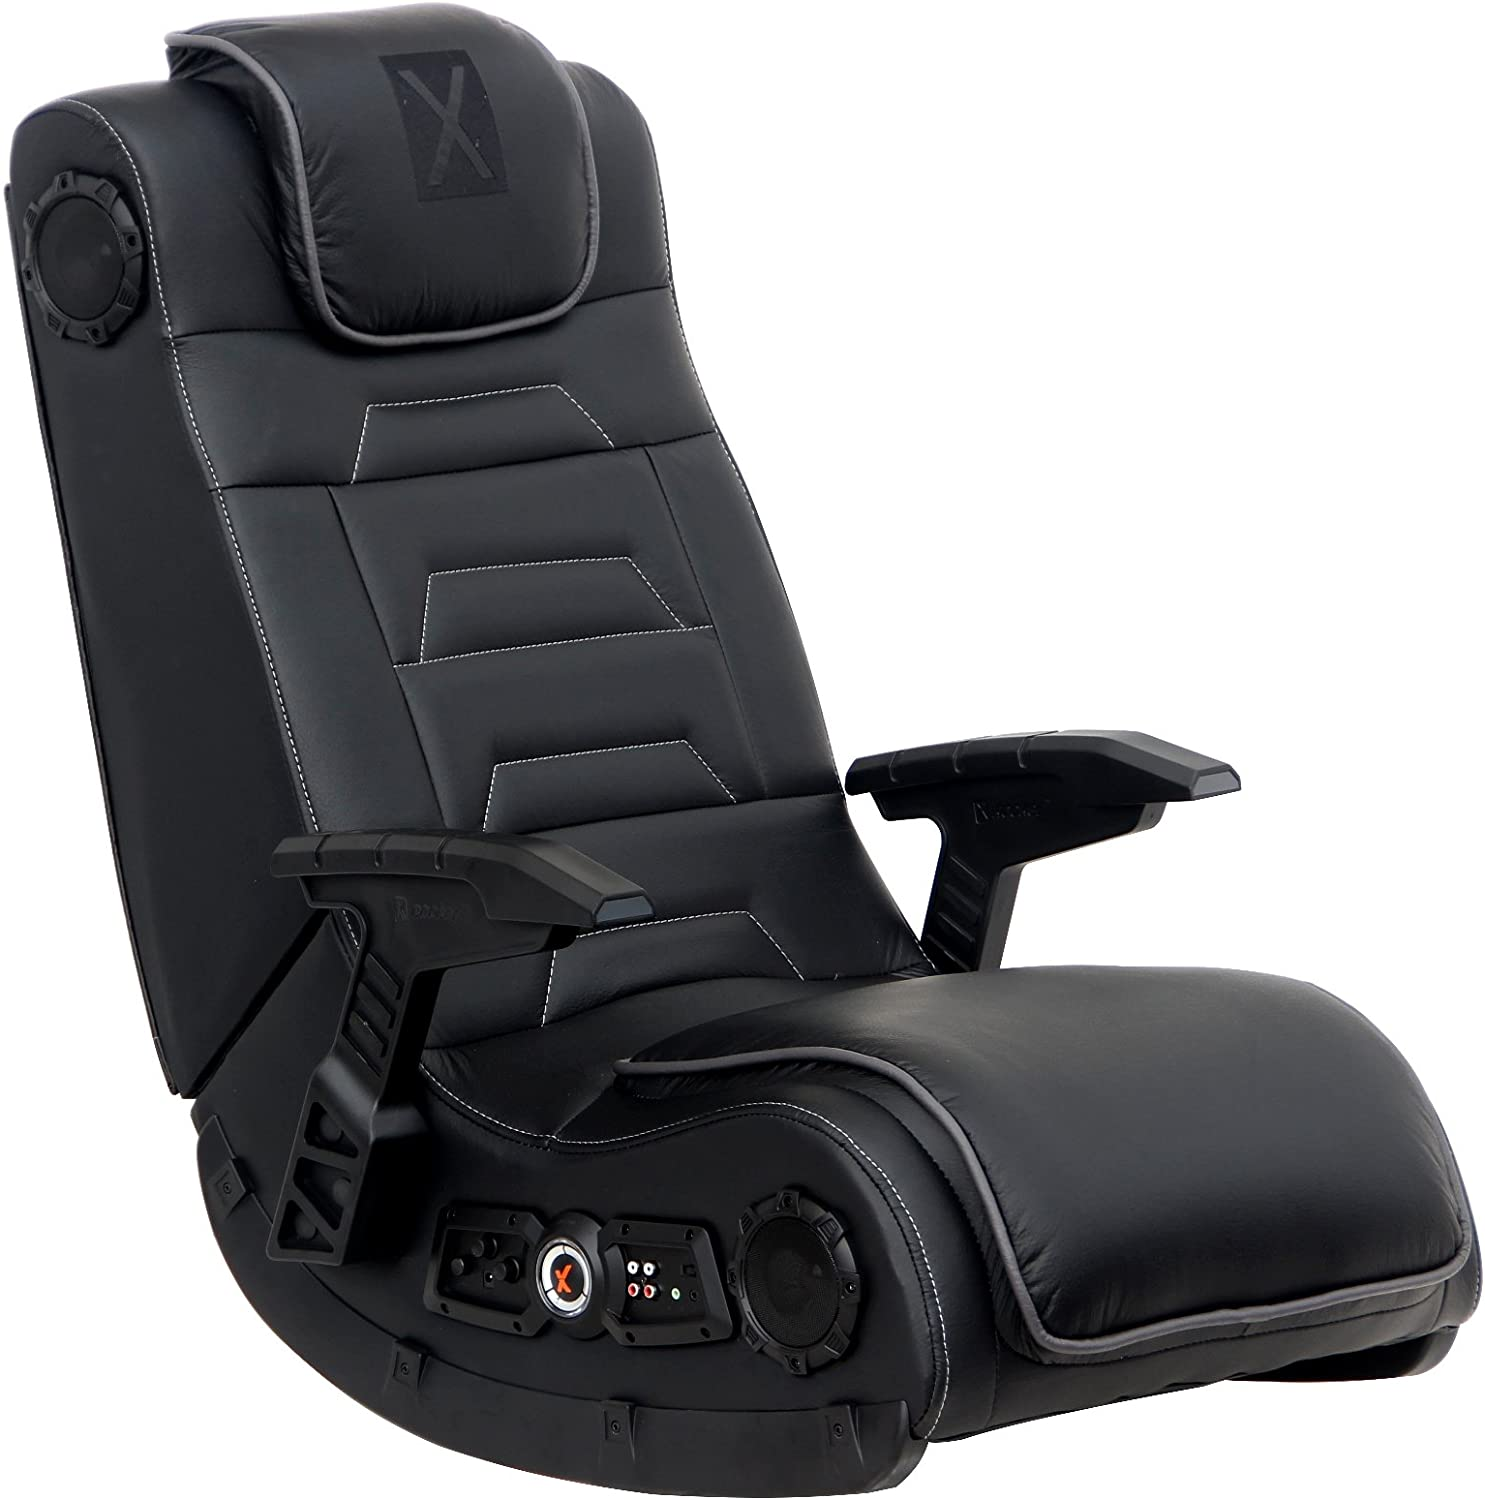 X Rocker Pro 2021new shipping free Series H3 Black latest Gamin Video Leather Vibrating Floor